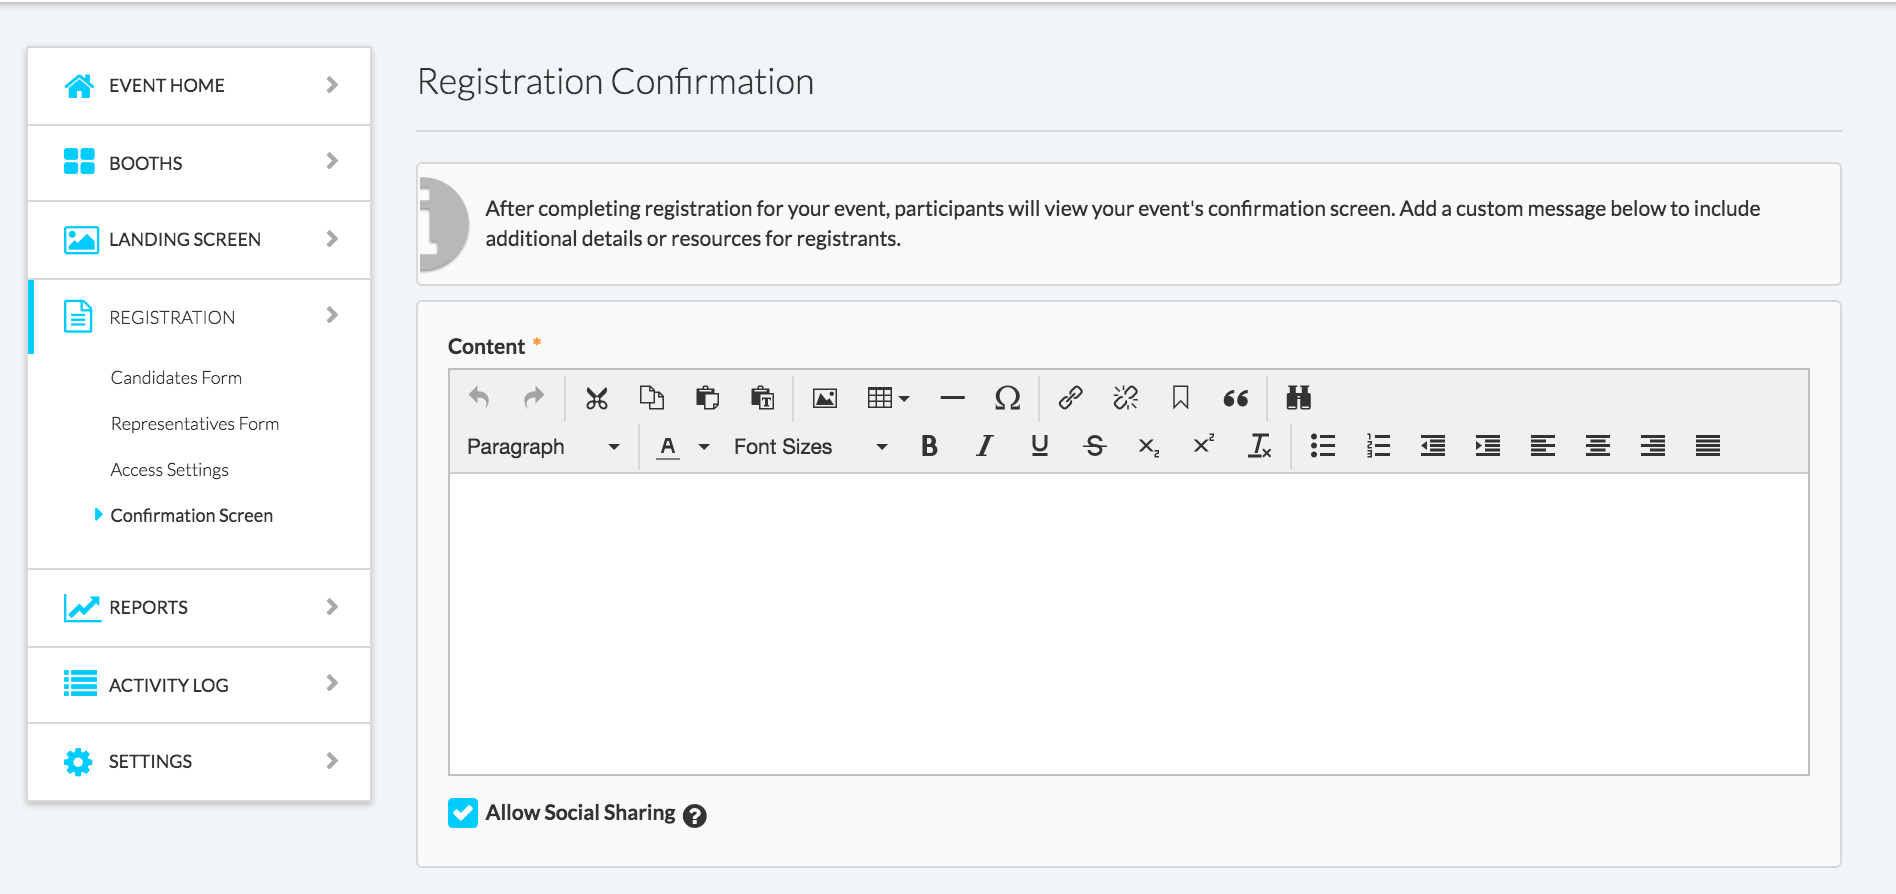 create_and_edit_registration_forms_pic_8.png